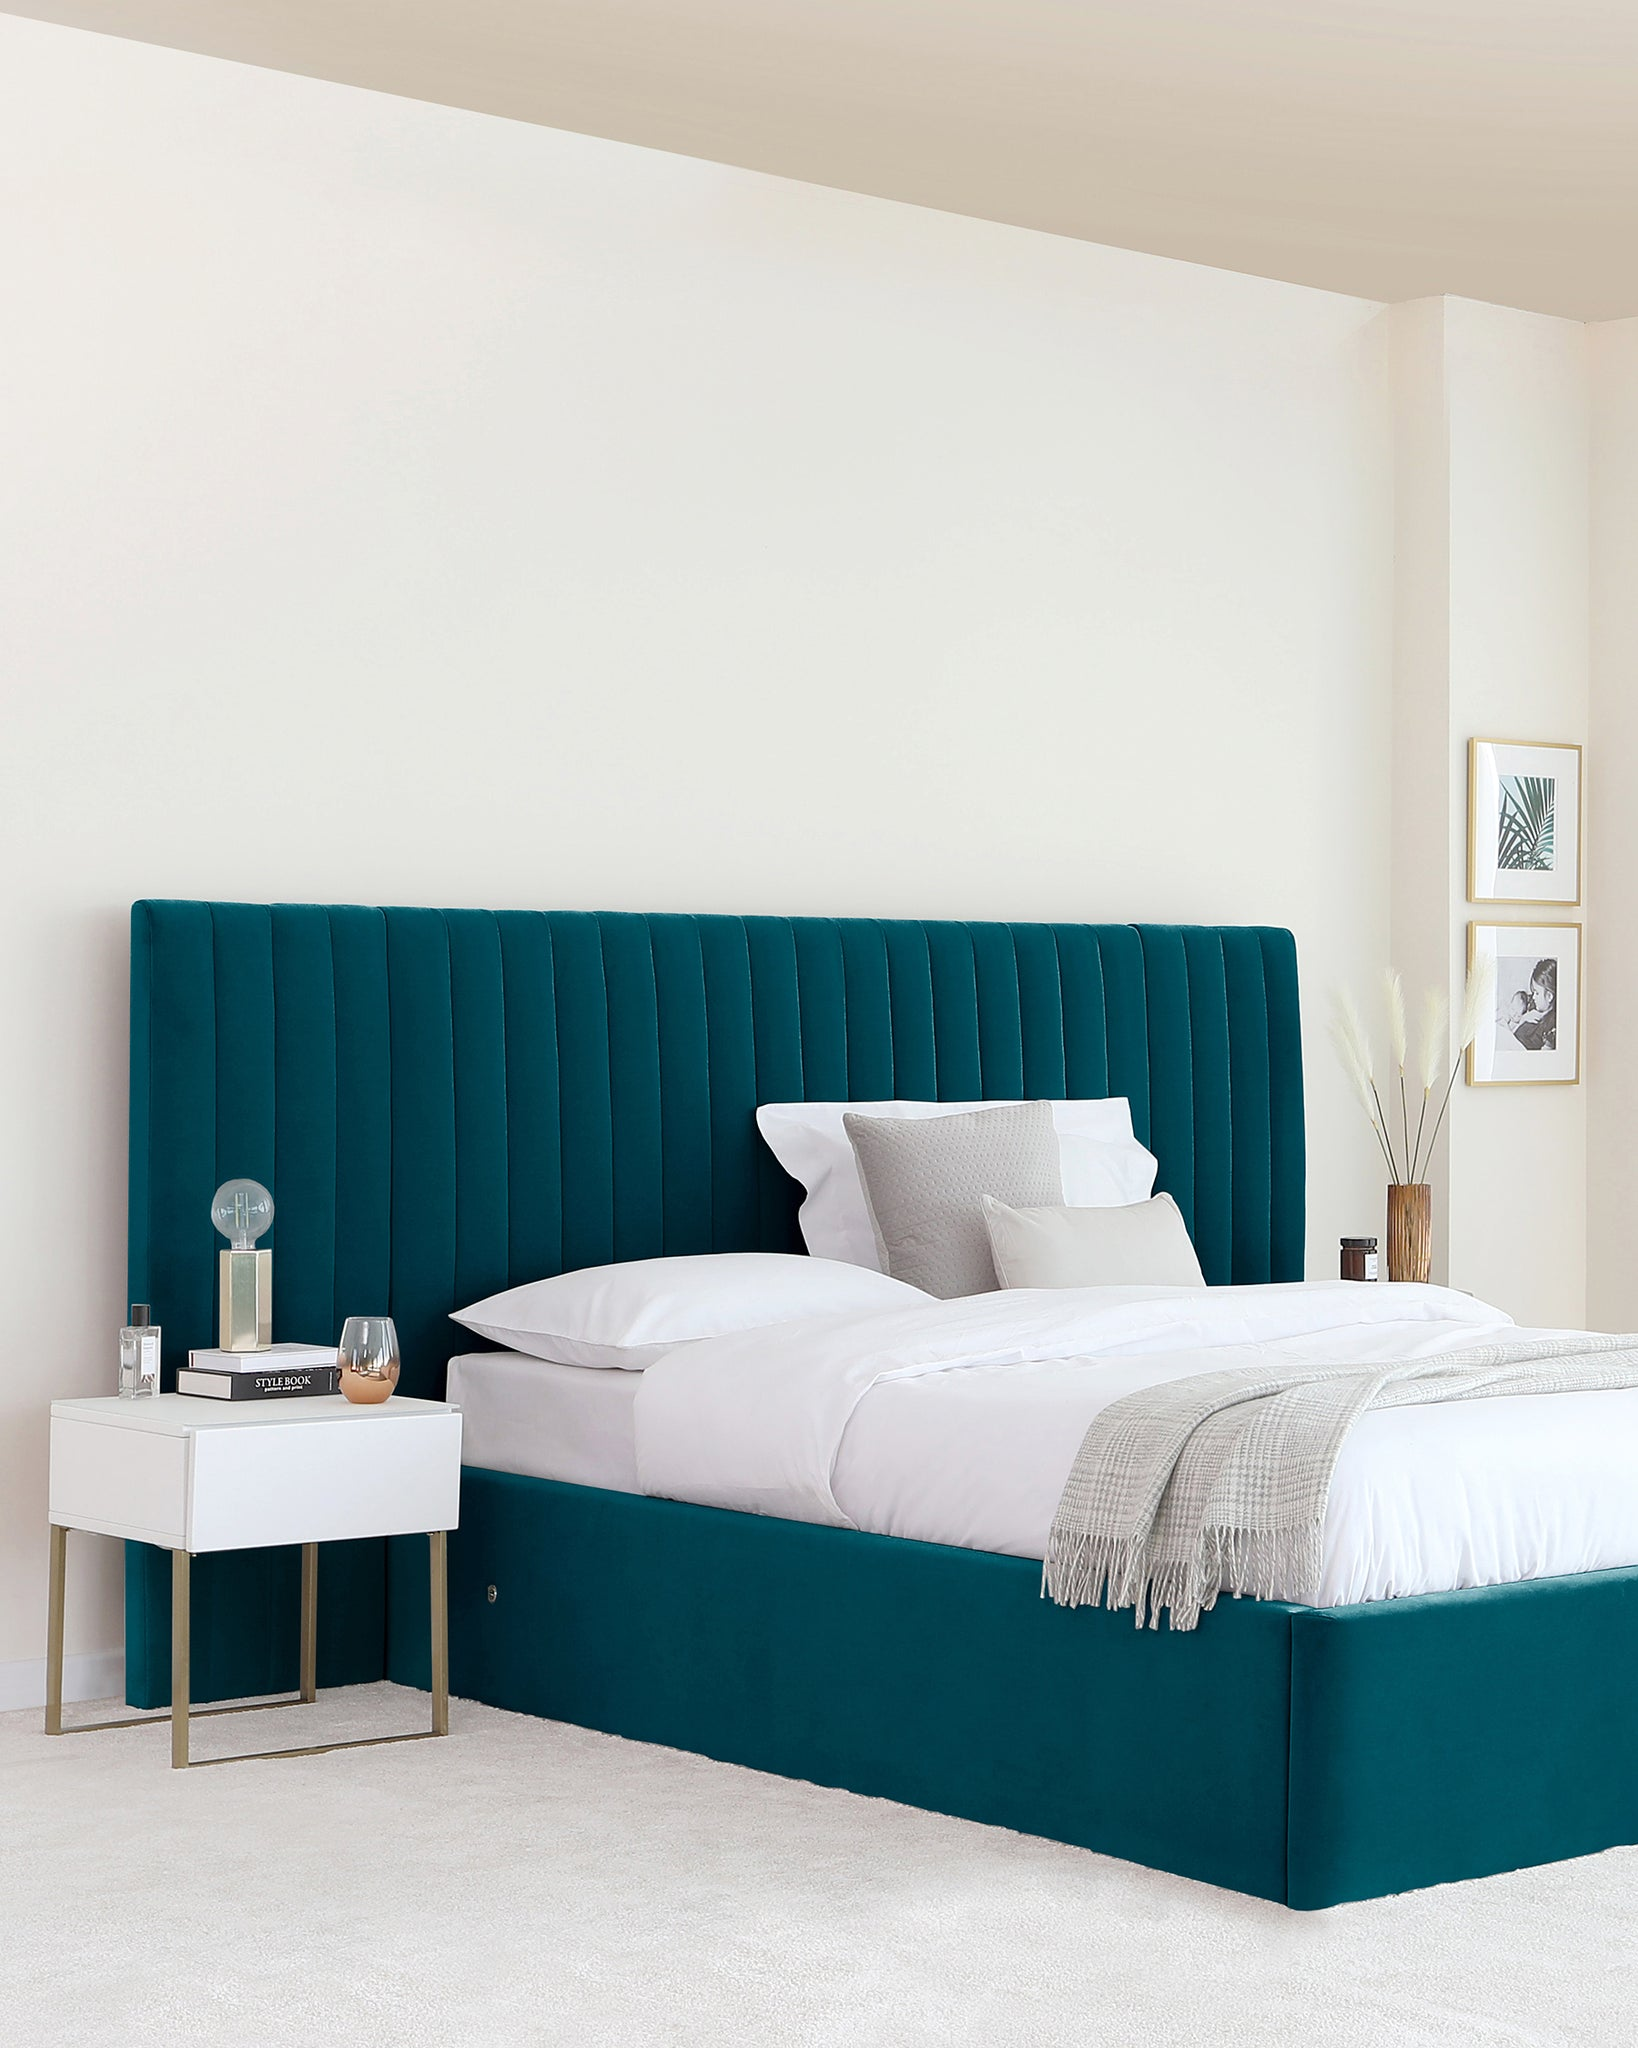 Luxury Beds Perfect For The Ultimate Bedroom Makeover Danetti